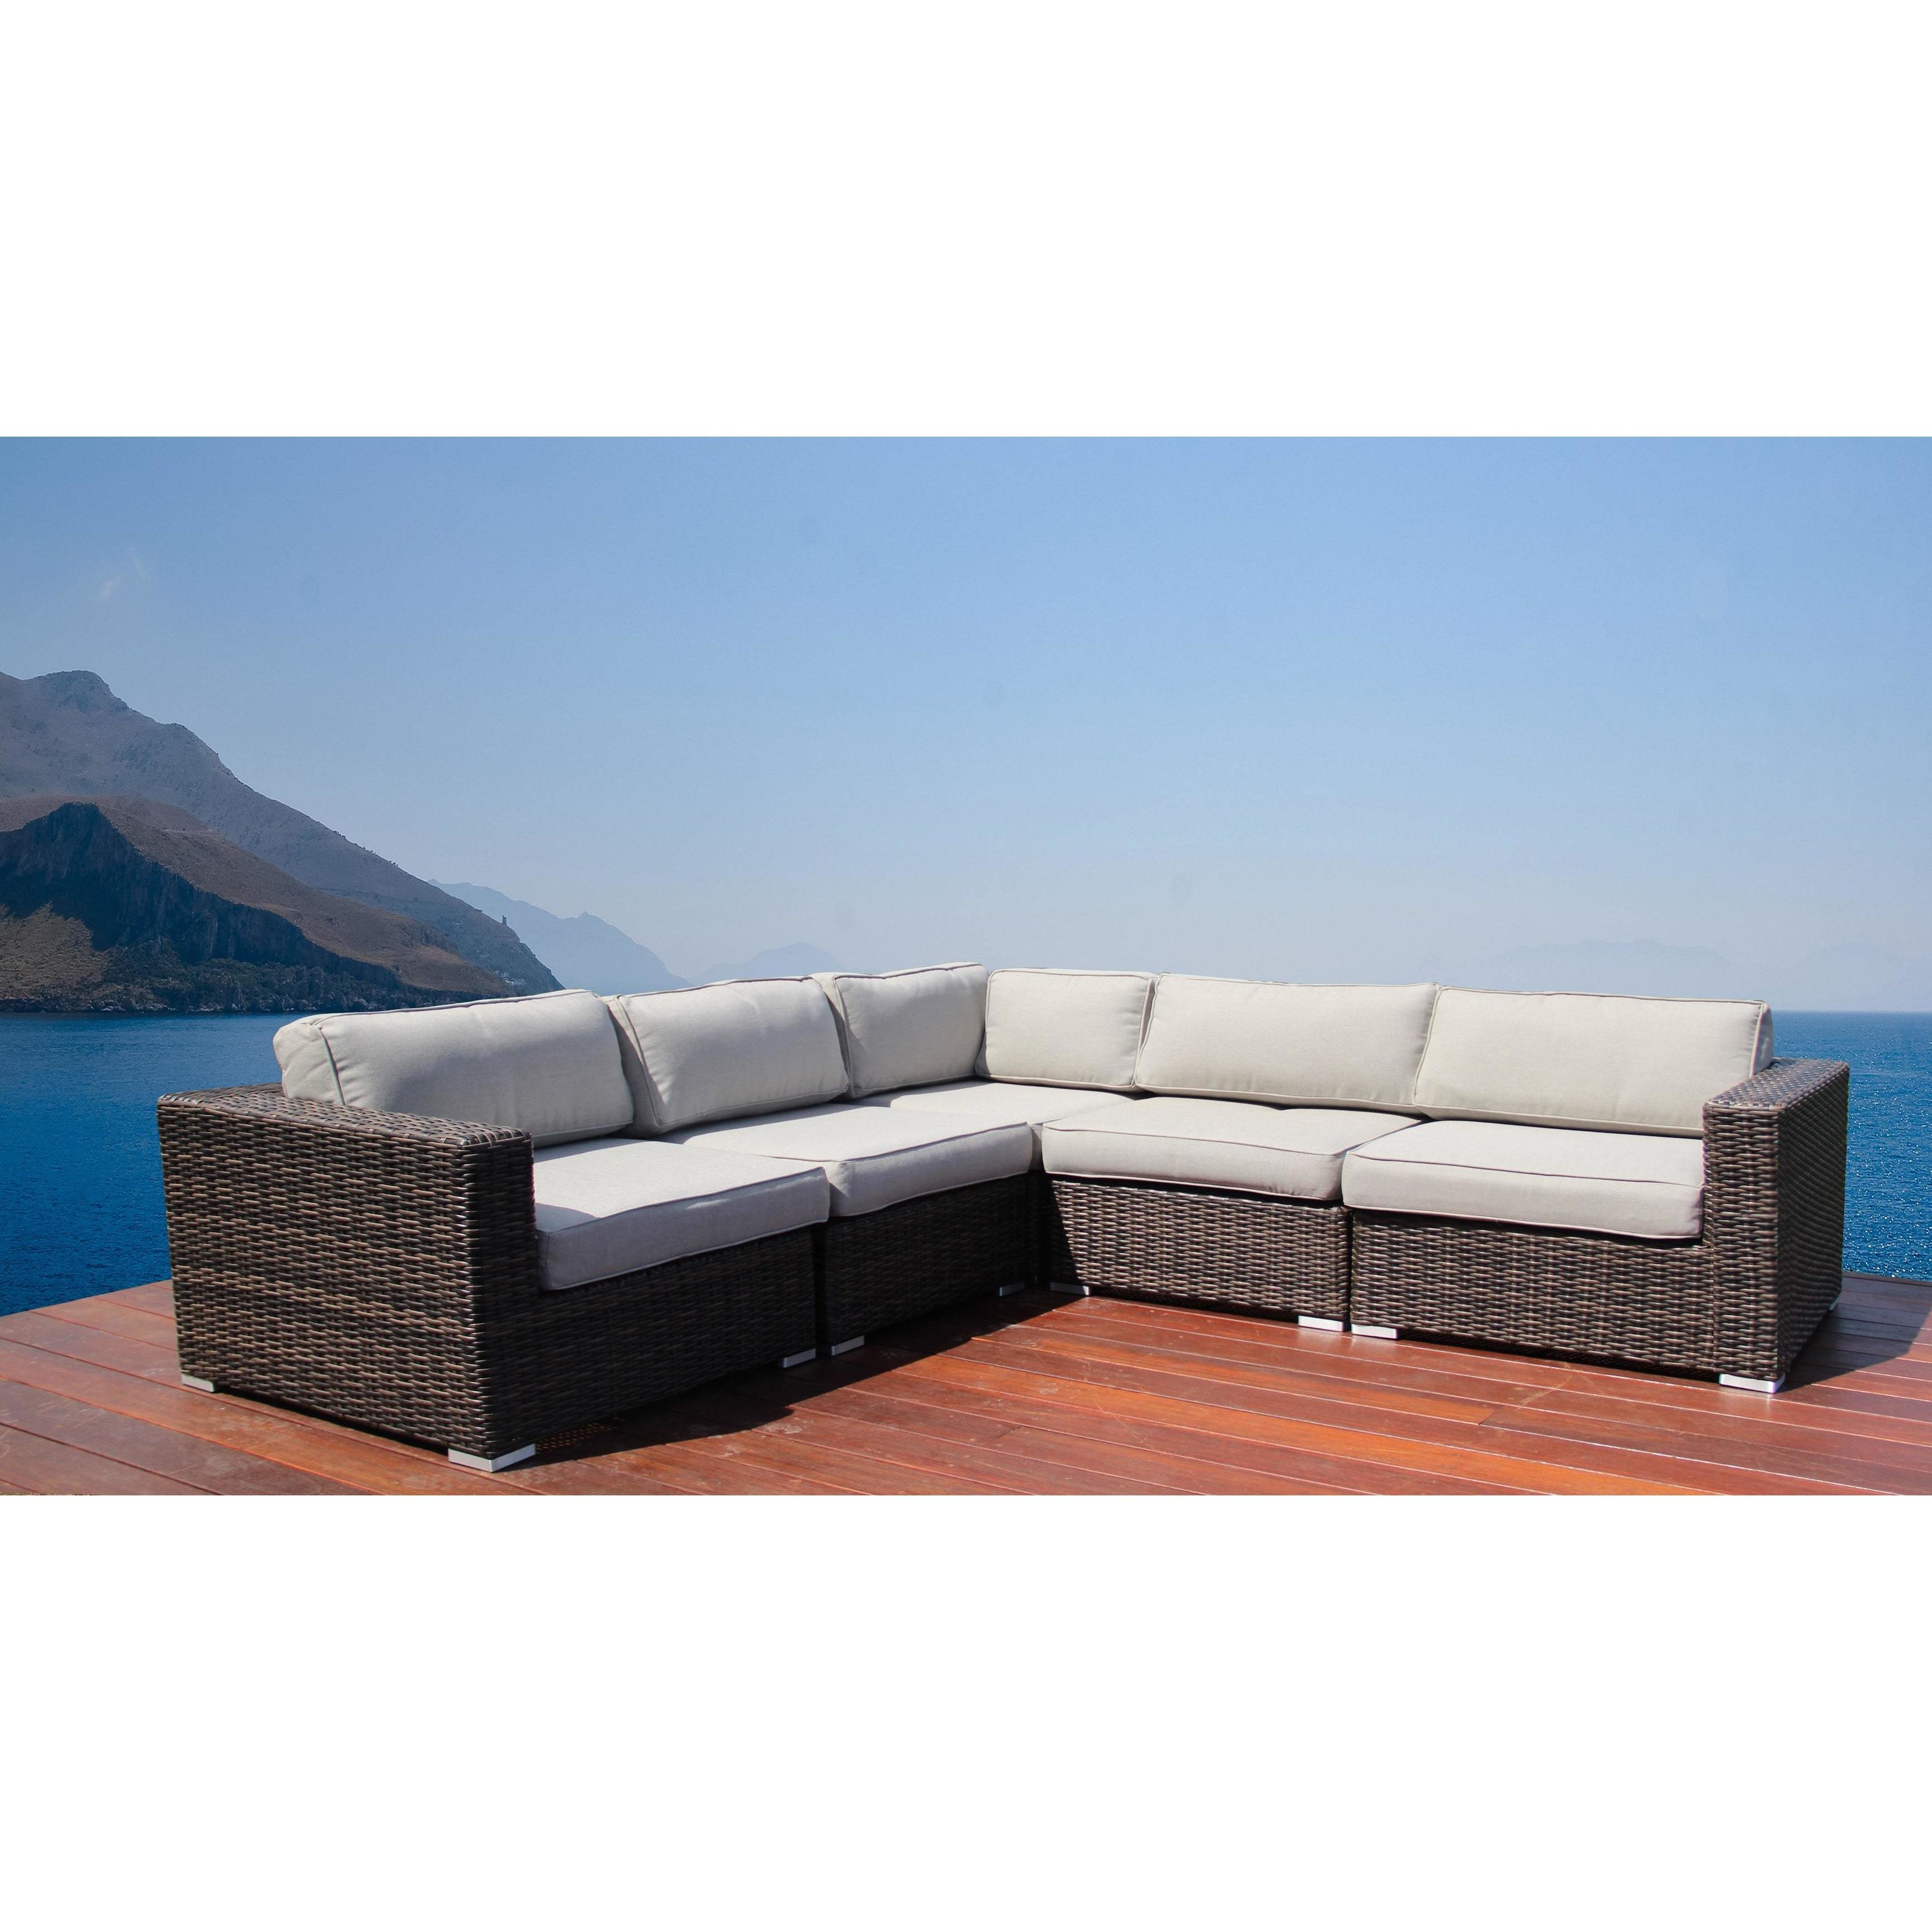 Nolen Patio Sectionals With Cushions For Trendy Latitude Run Nolen Patio Sectional With Cushions & Reviews (View 6 of 20)